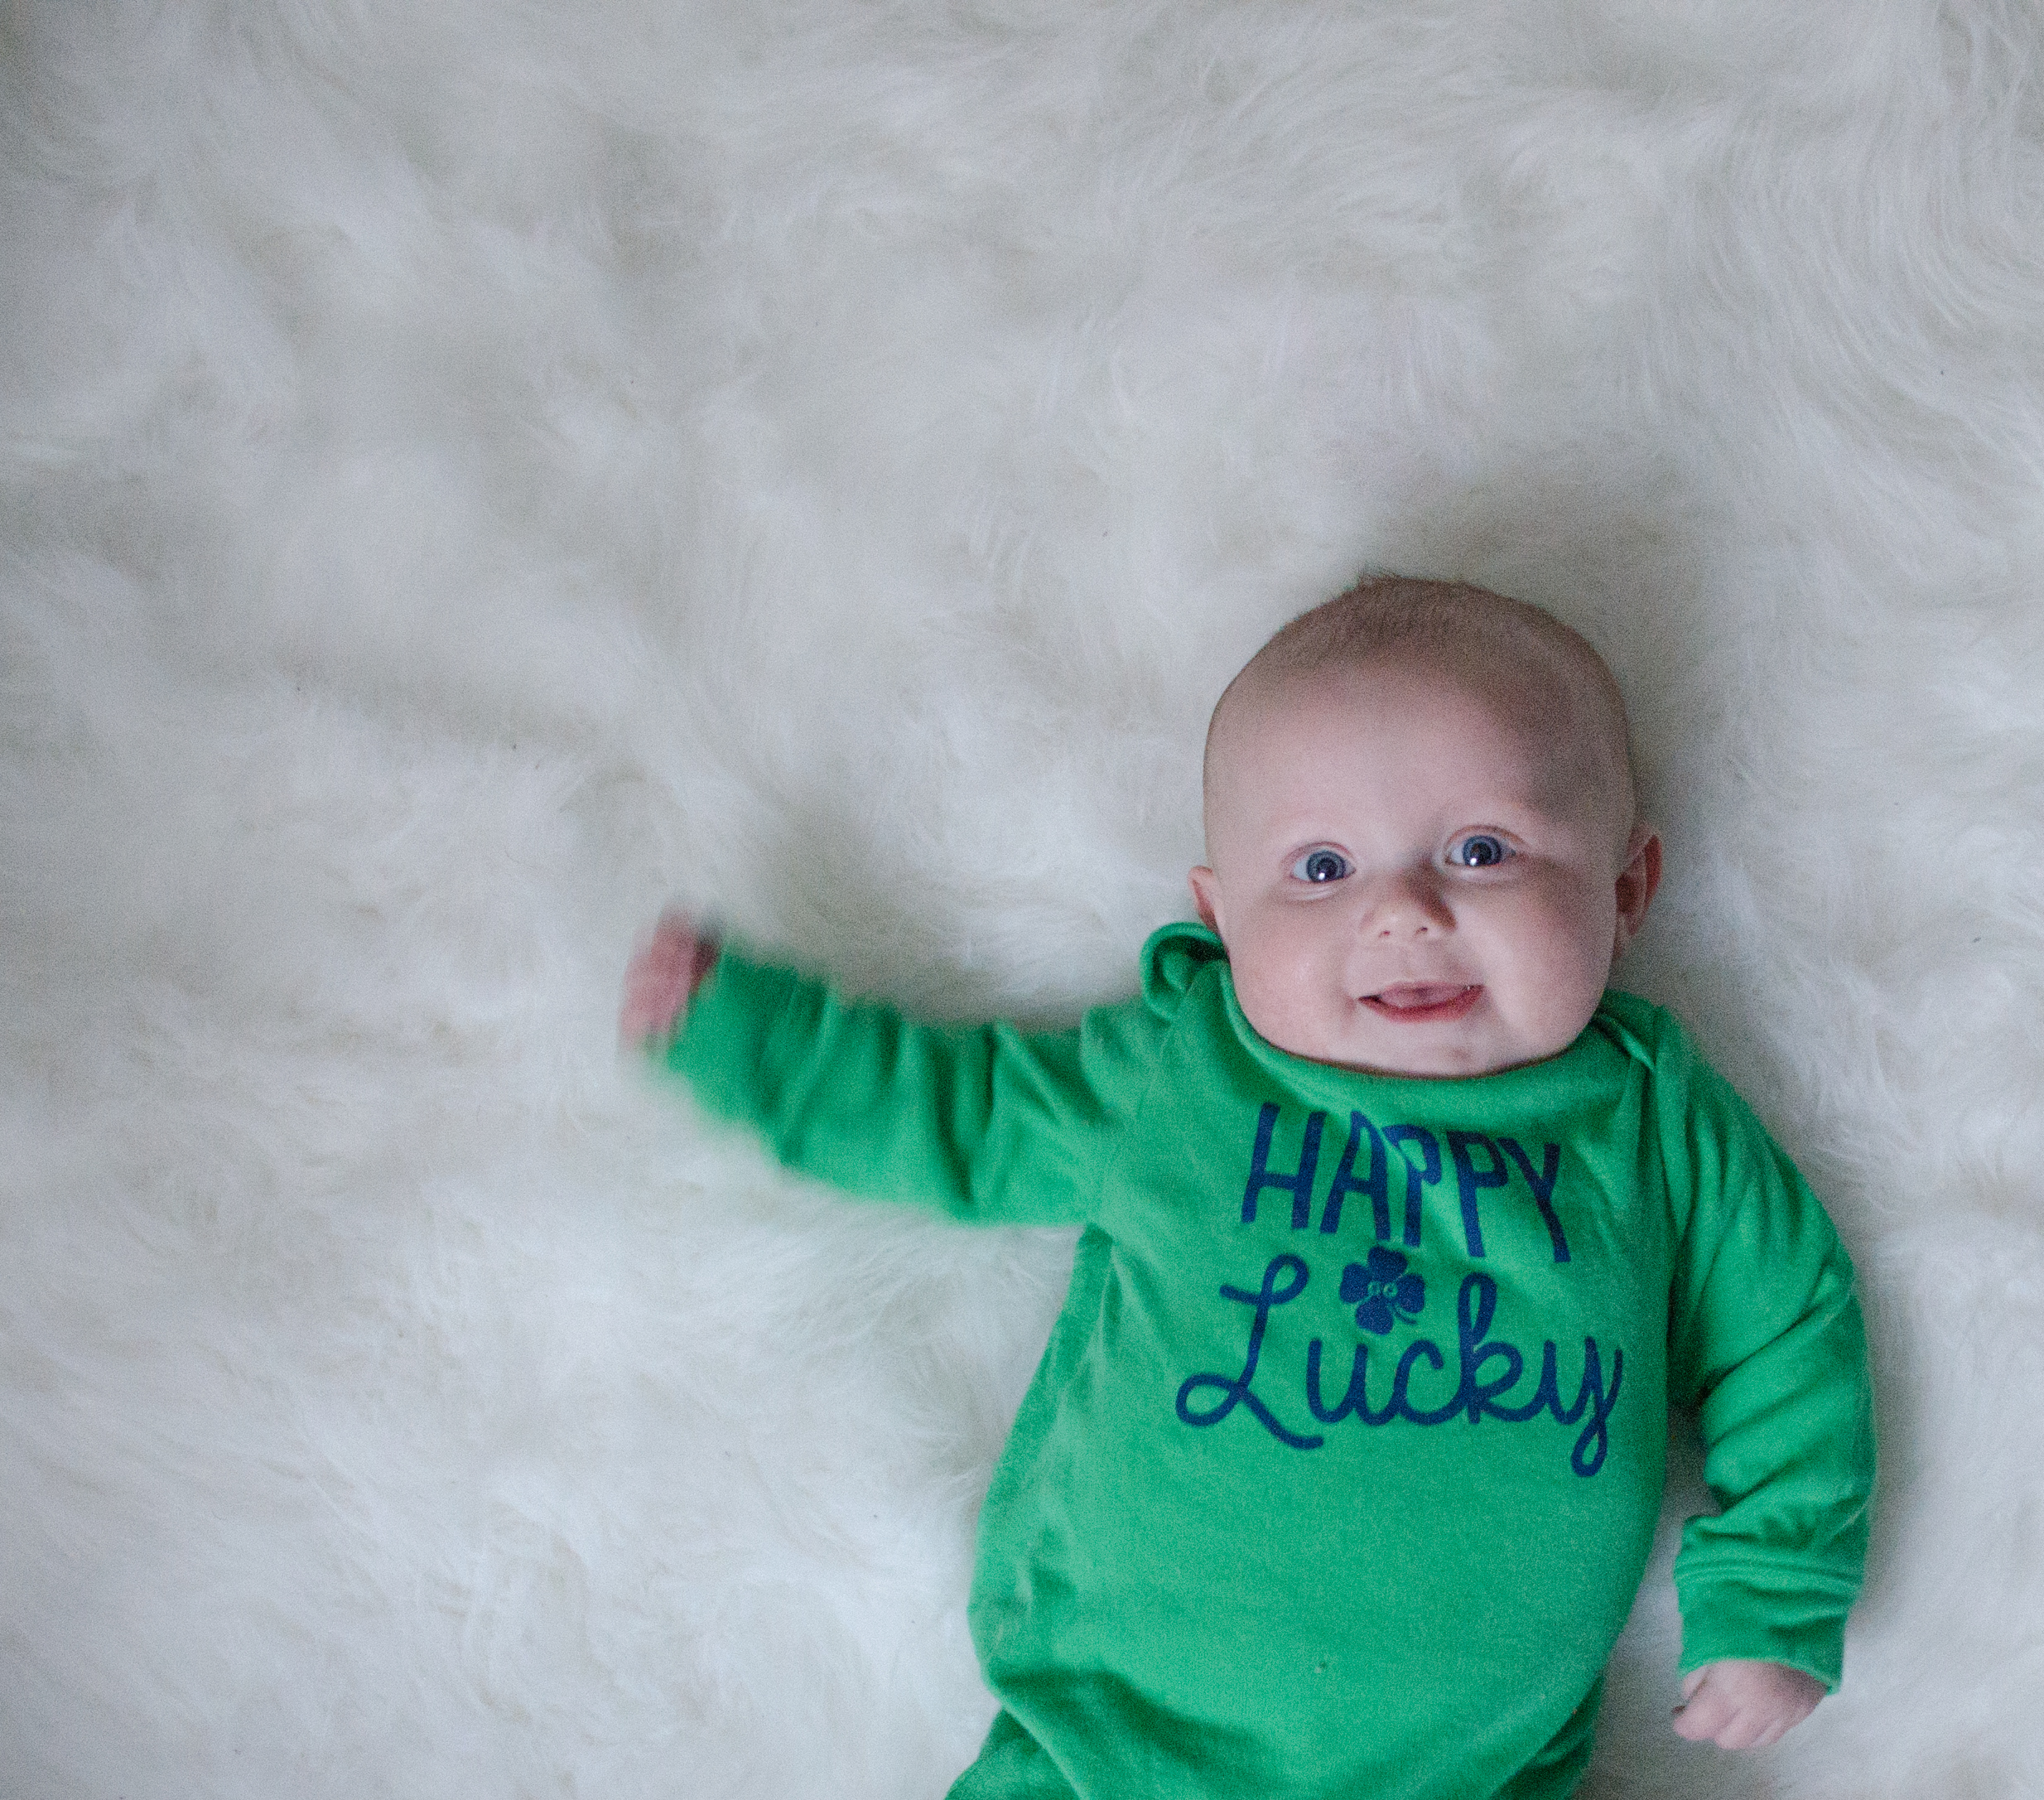 Baby in March St. Patrick's Day Onesie lying on faux-sheepskin rug.